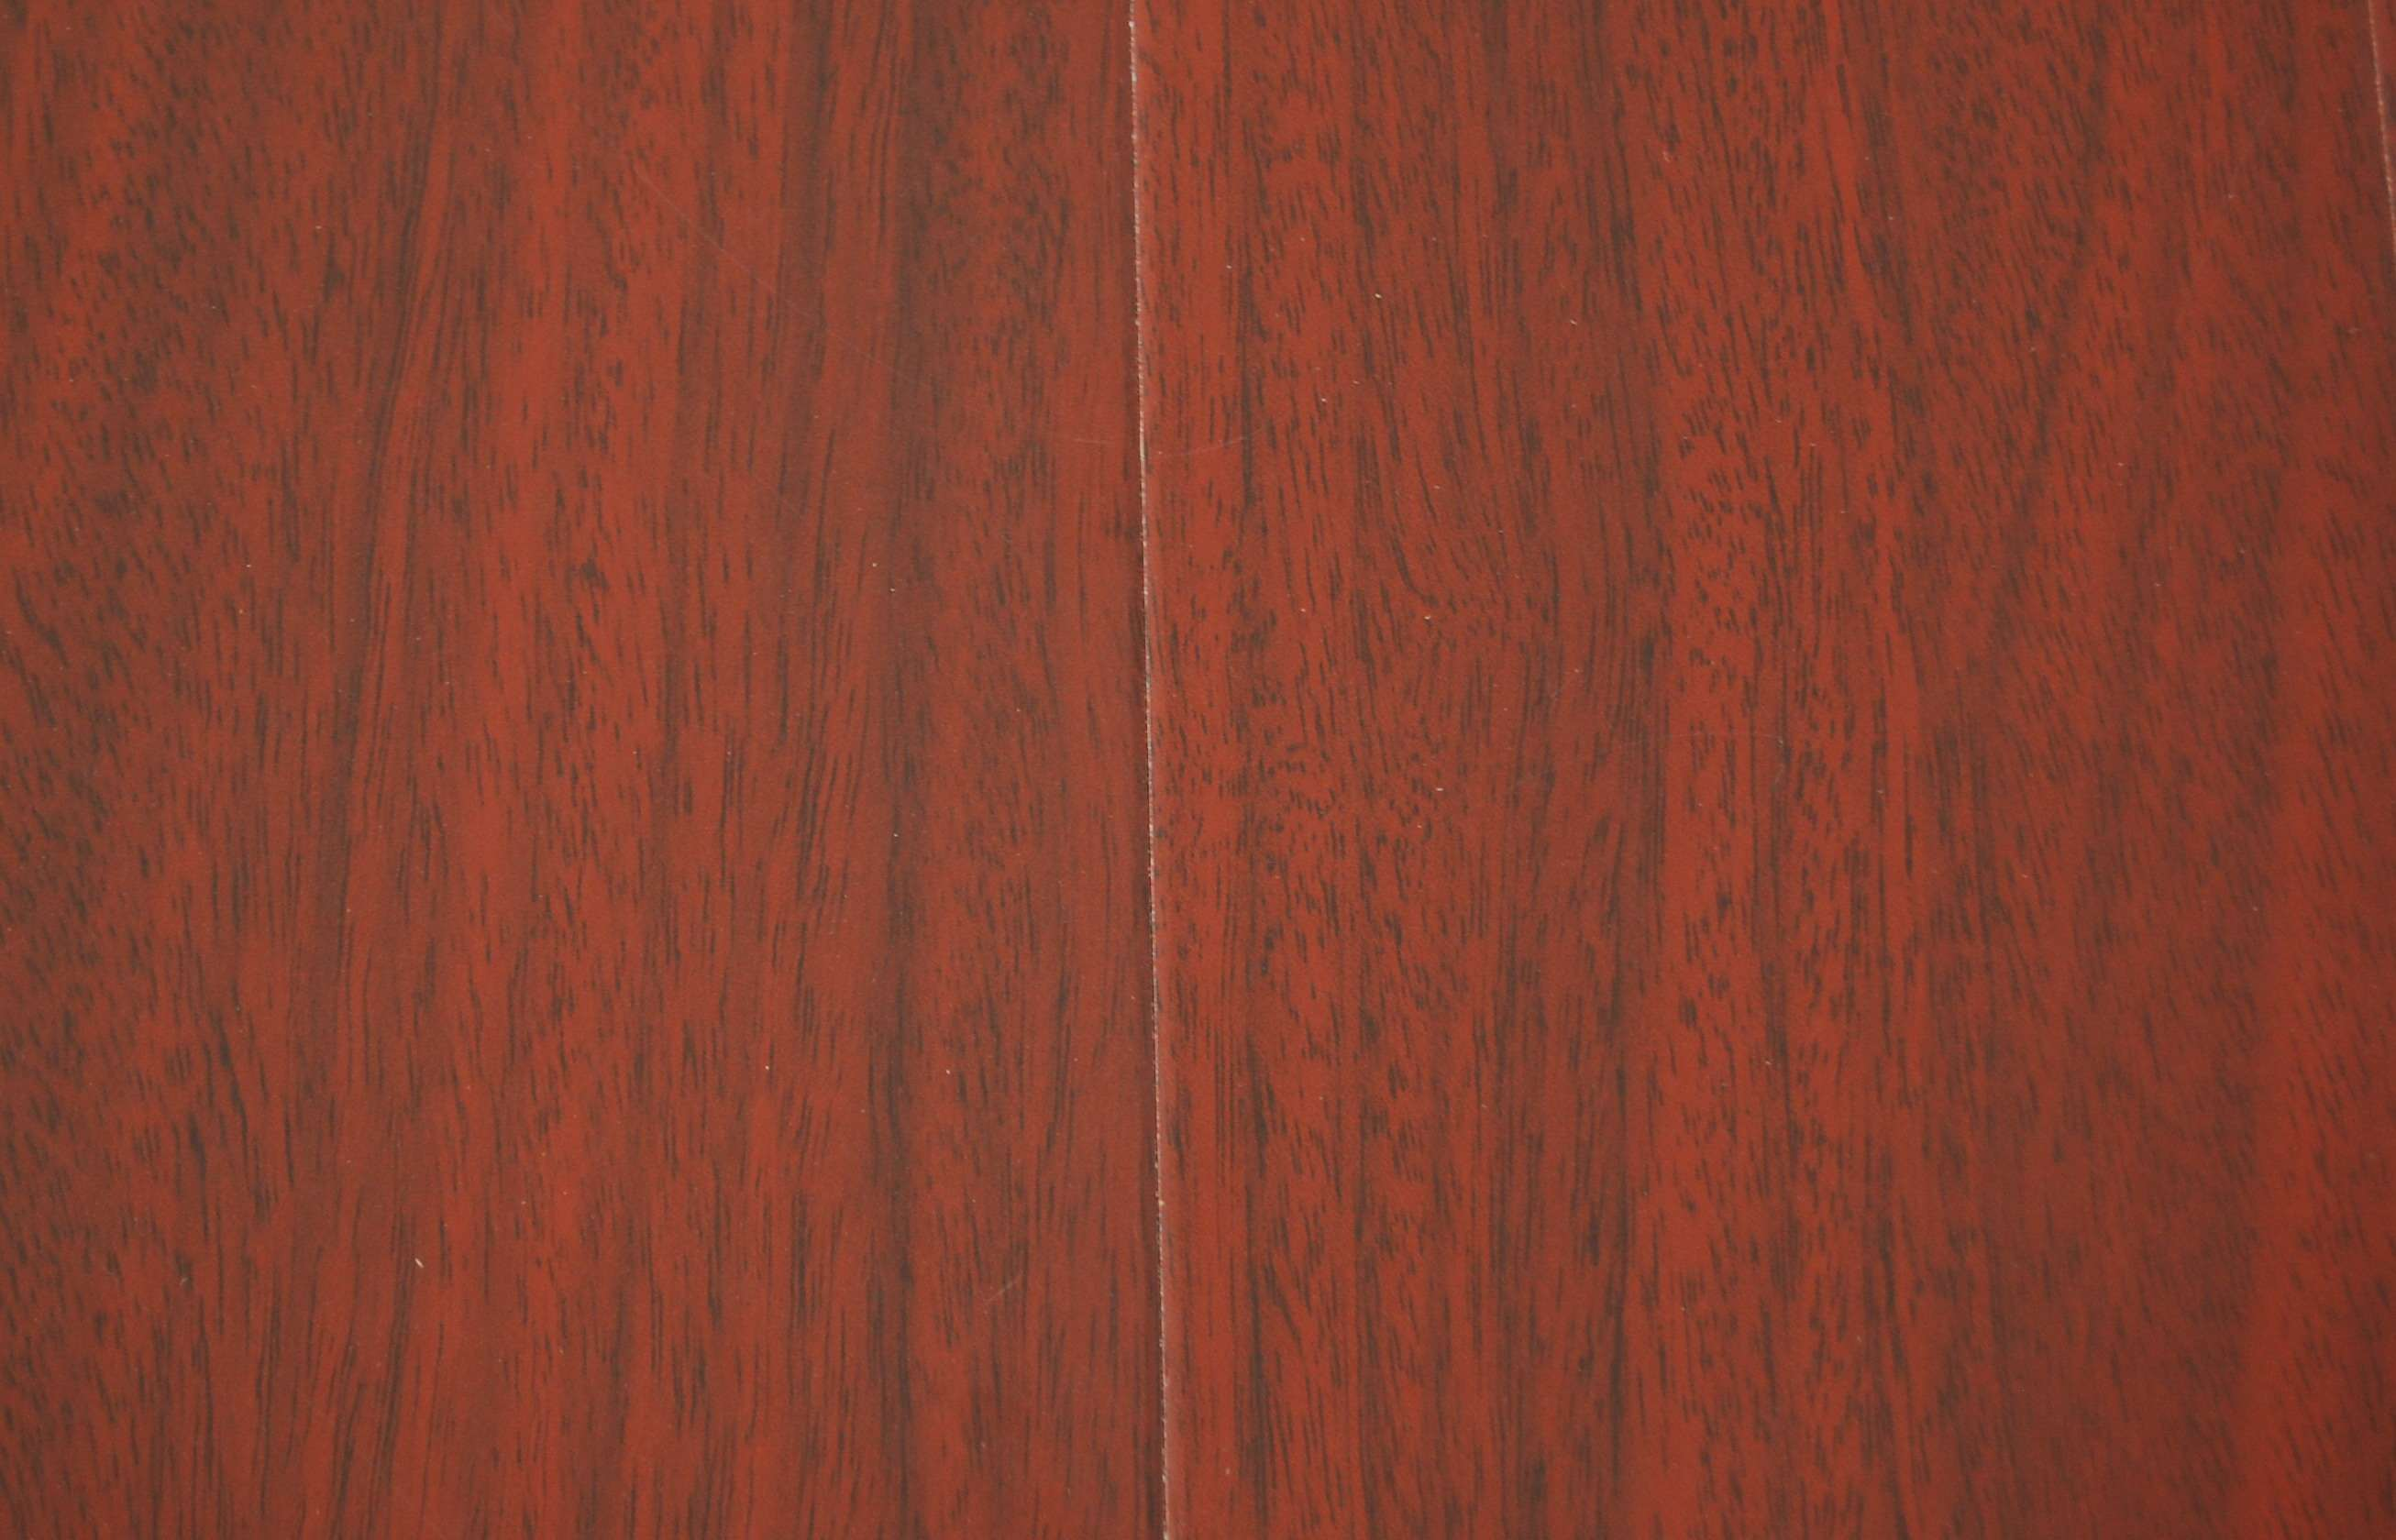 Formica laminate wood flooring images for Laminated wood